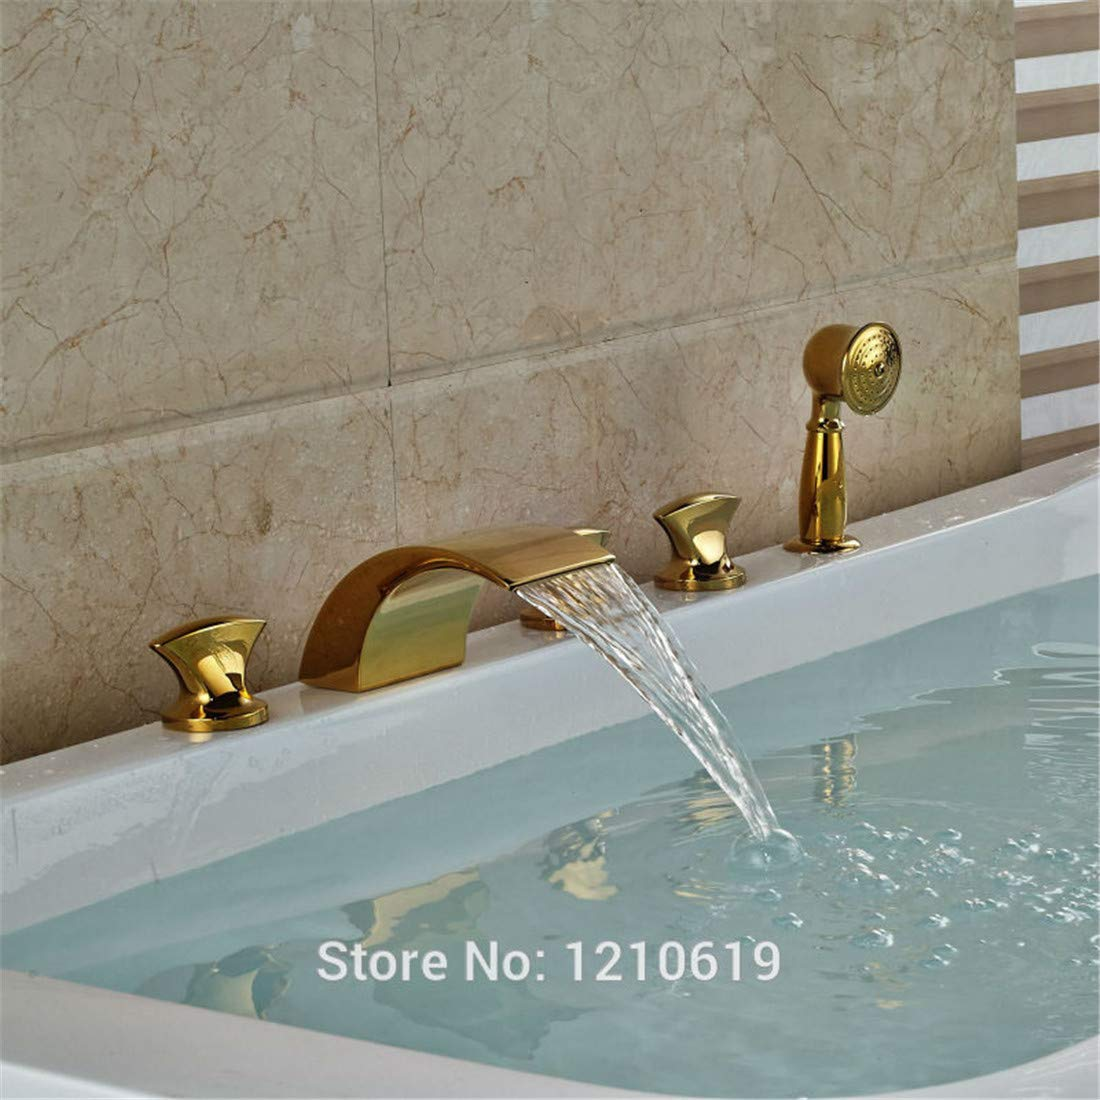 Retro Plated Hot and Cold Faucet Retrogold Plate Bathtub Faucet Set Deck Mount Waterfall Shower Tub Faucet